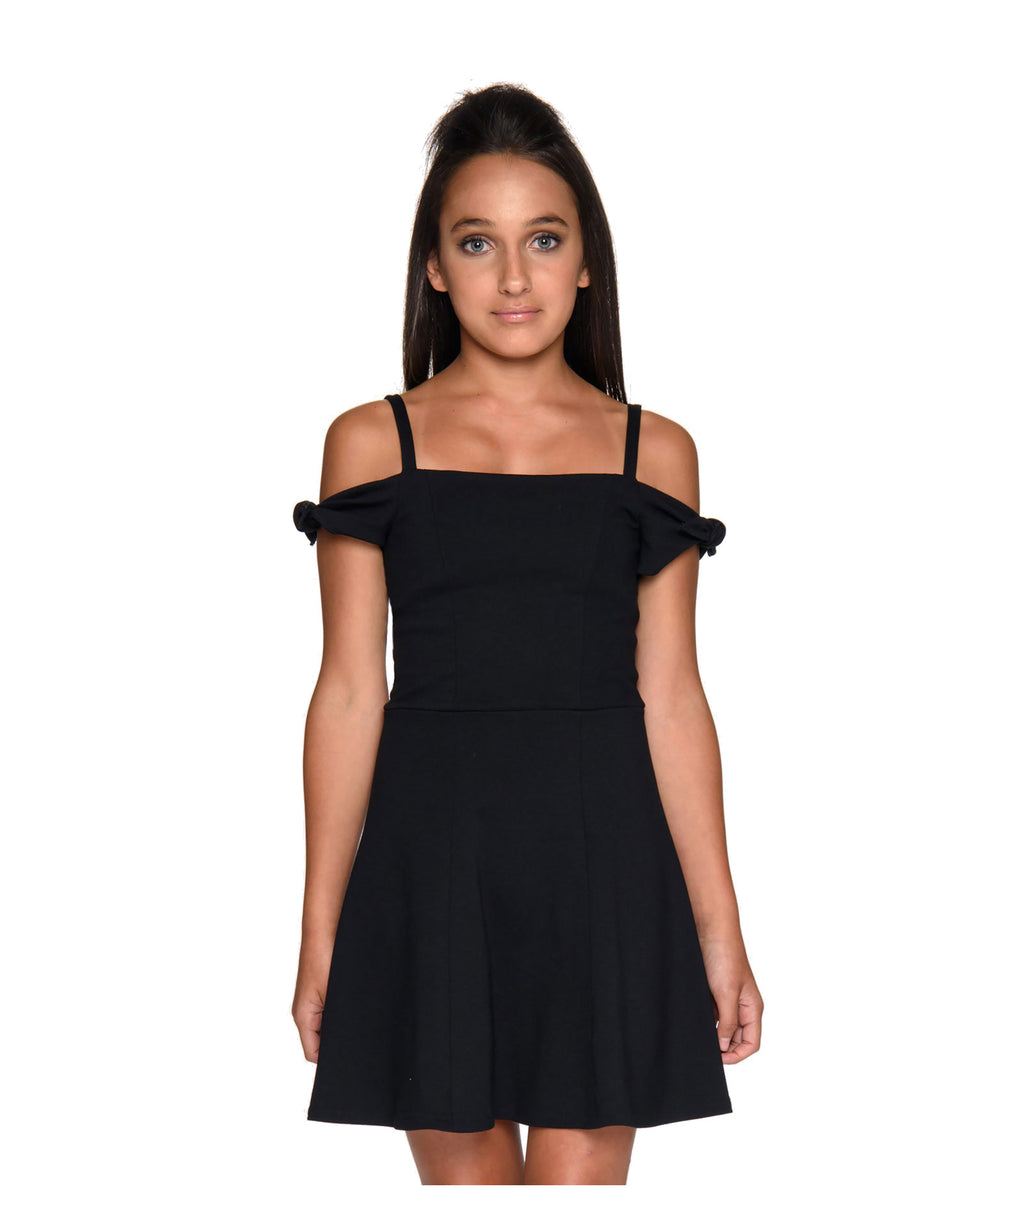 Sally Miller Girls Simone Dress - Frankie's on the Park